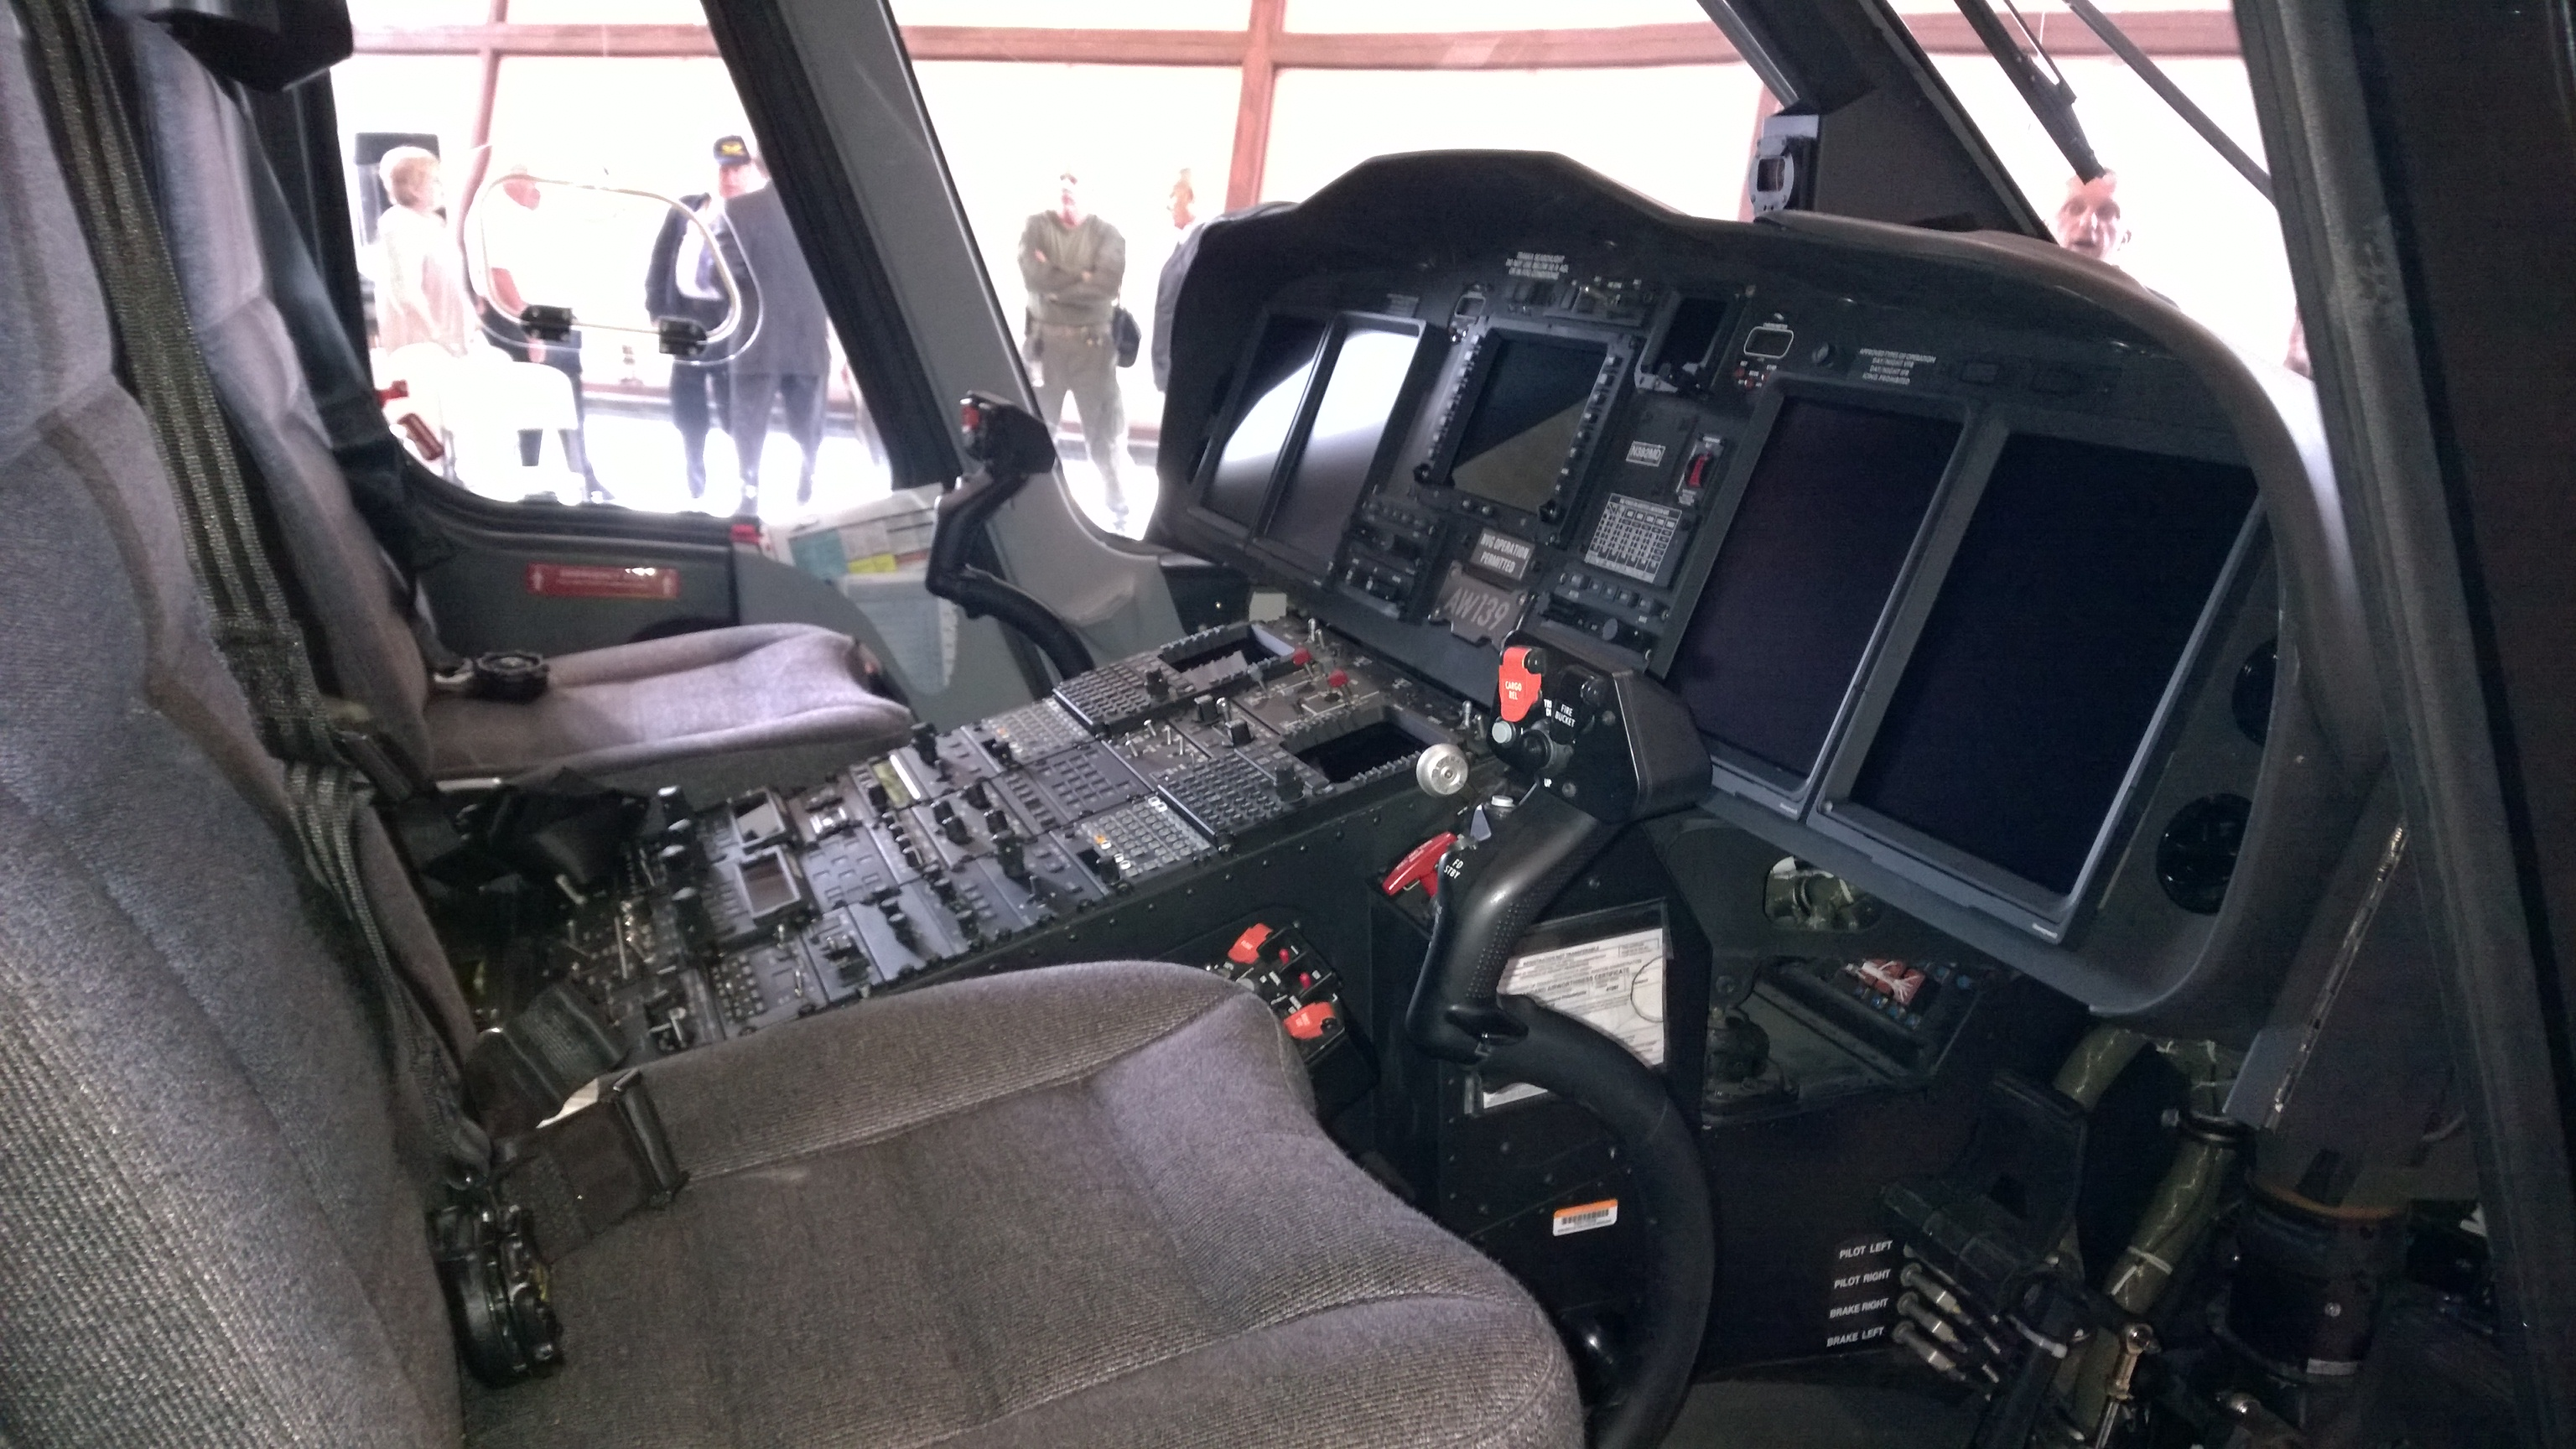 The cockpit of the Maryland State Police Trooper Seven medevac helicopter. THE CHESAPEAKE TODAY photo